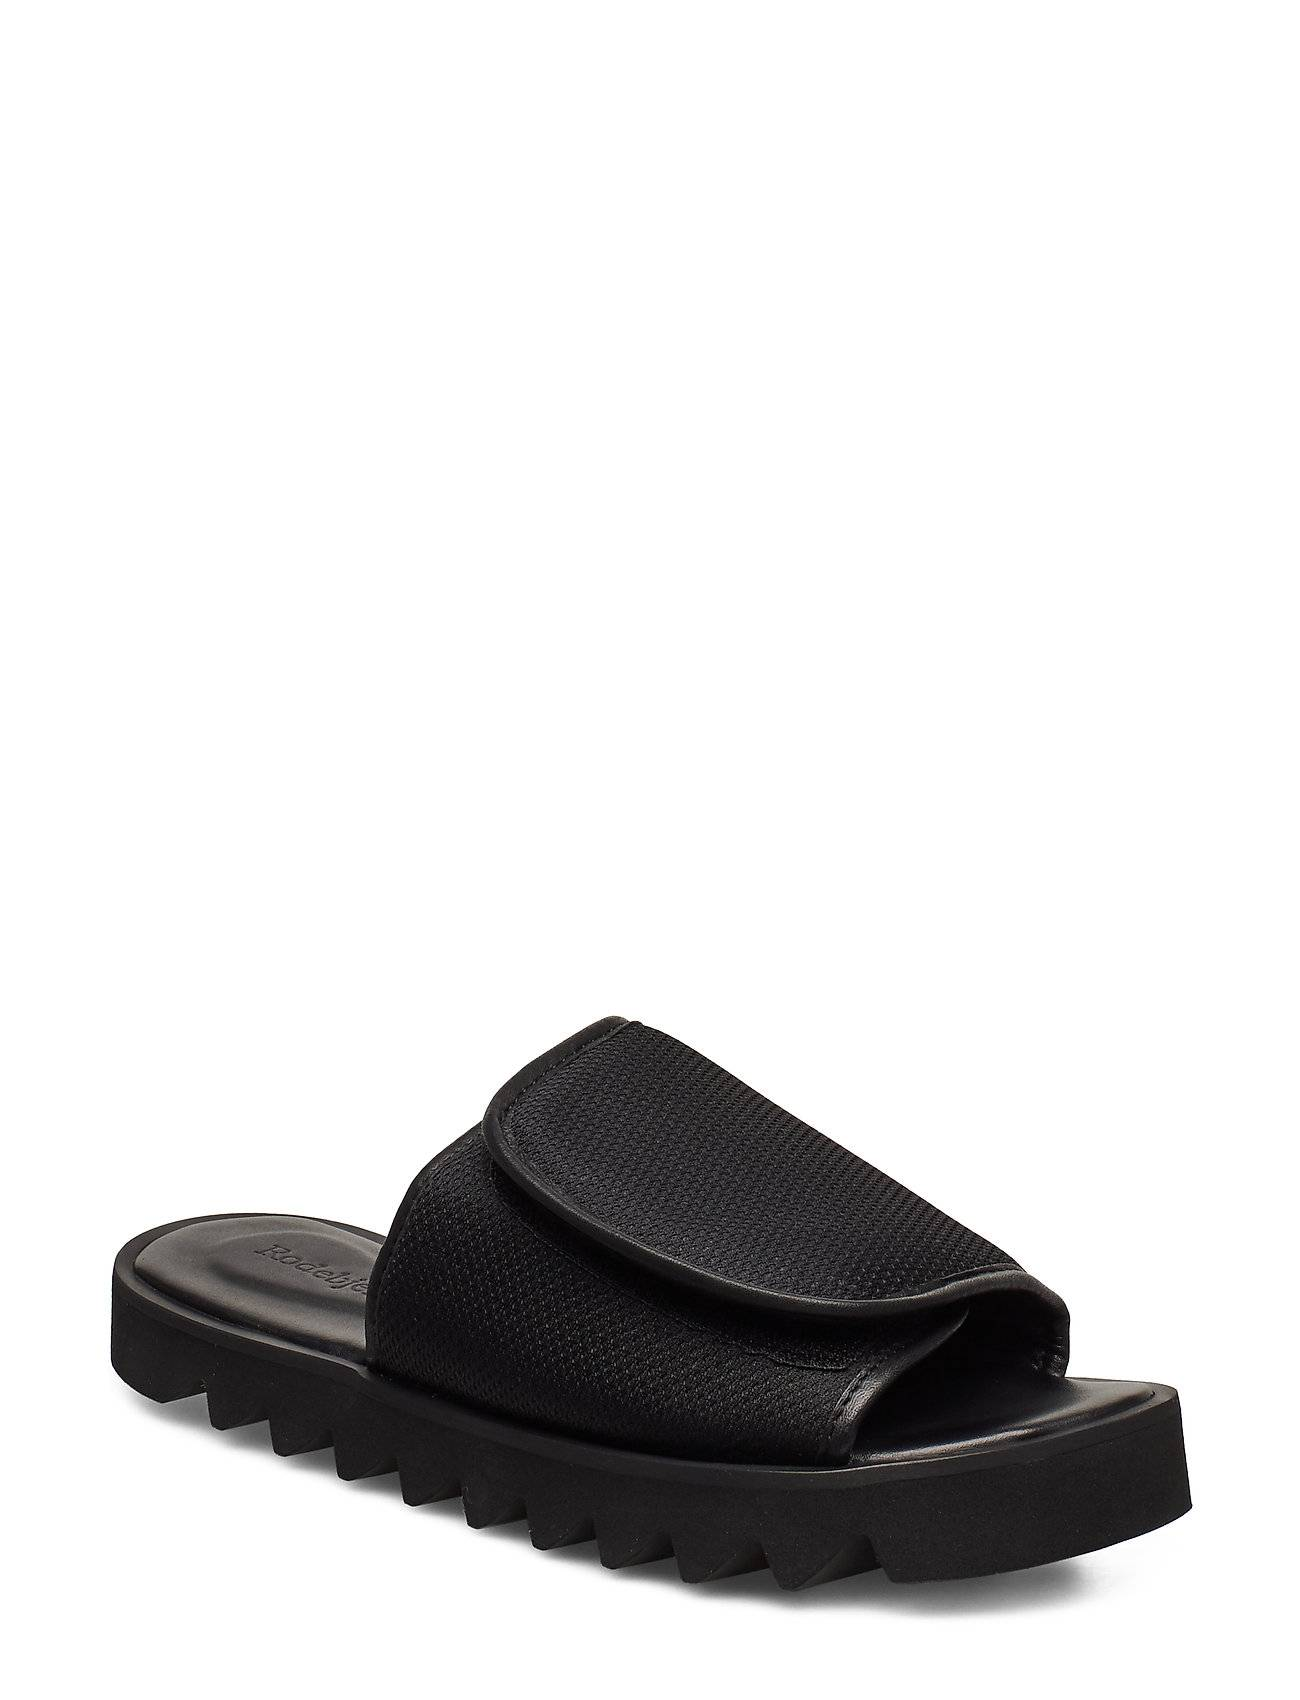 Rodebjer Micki Shoes Summer Shoes Flat Sandals Musta RODEBJER